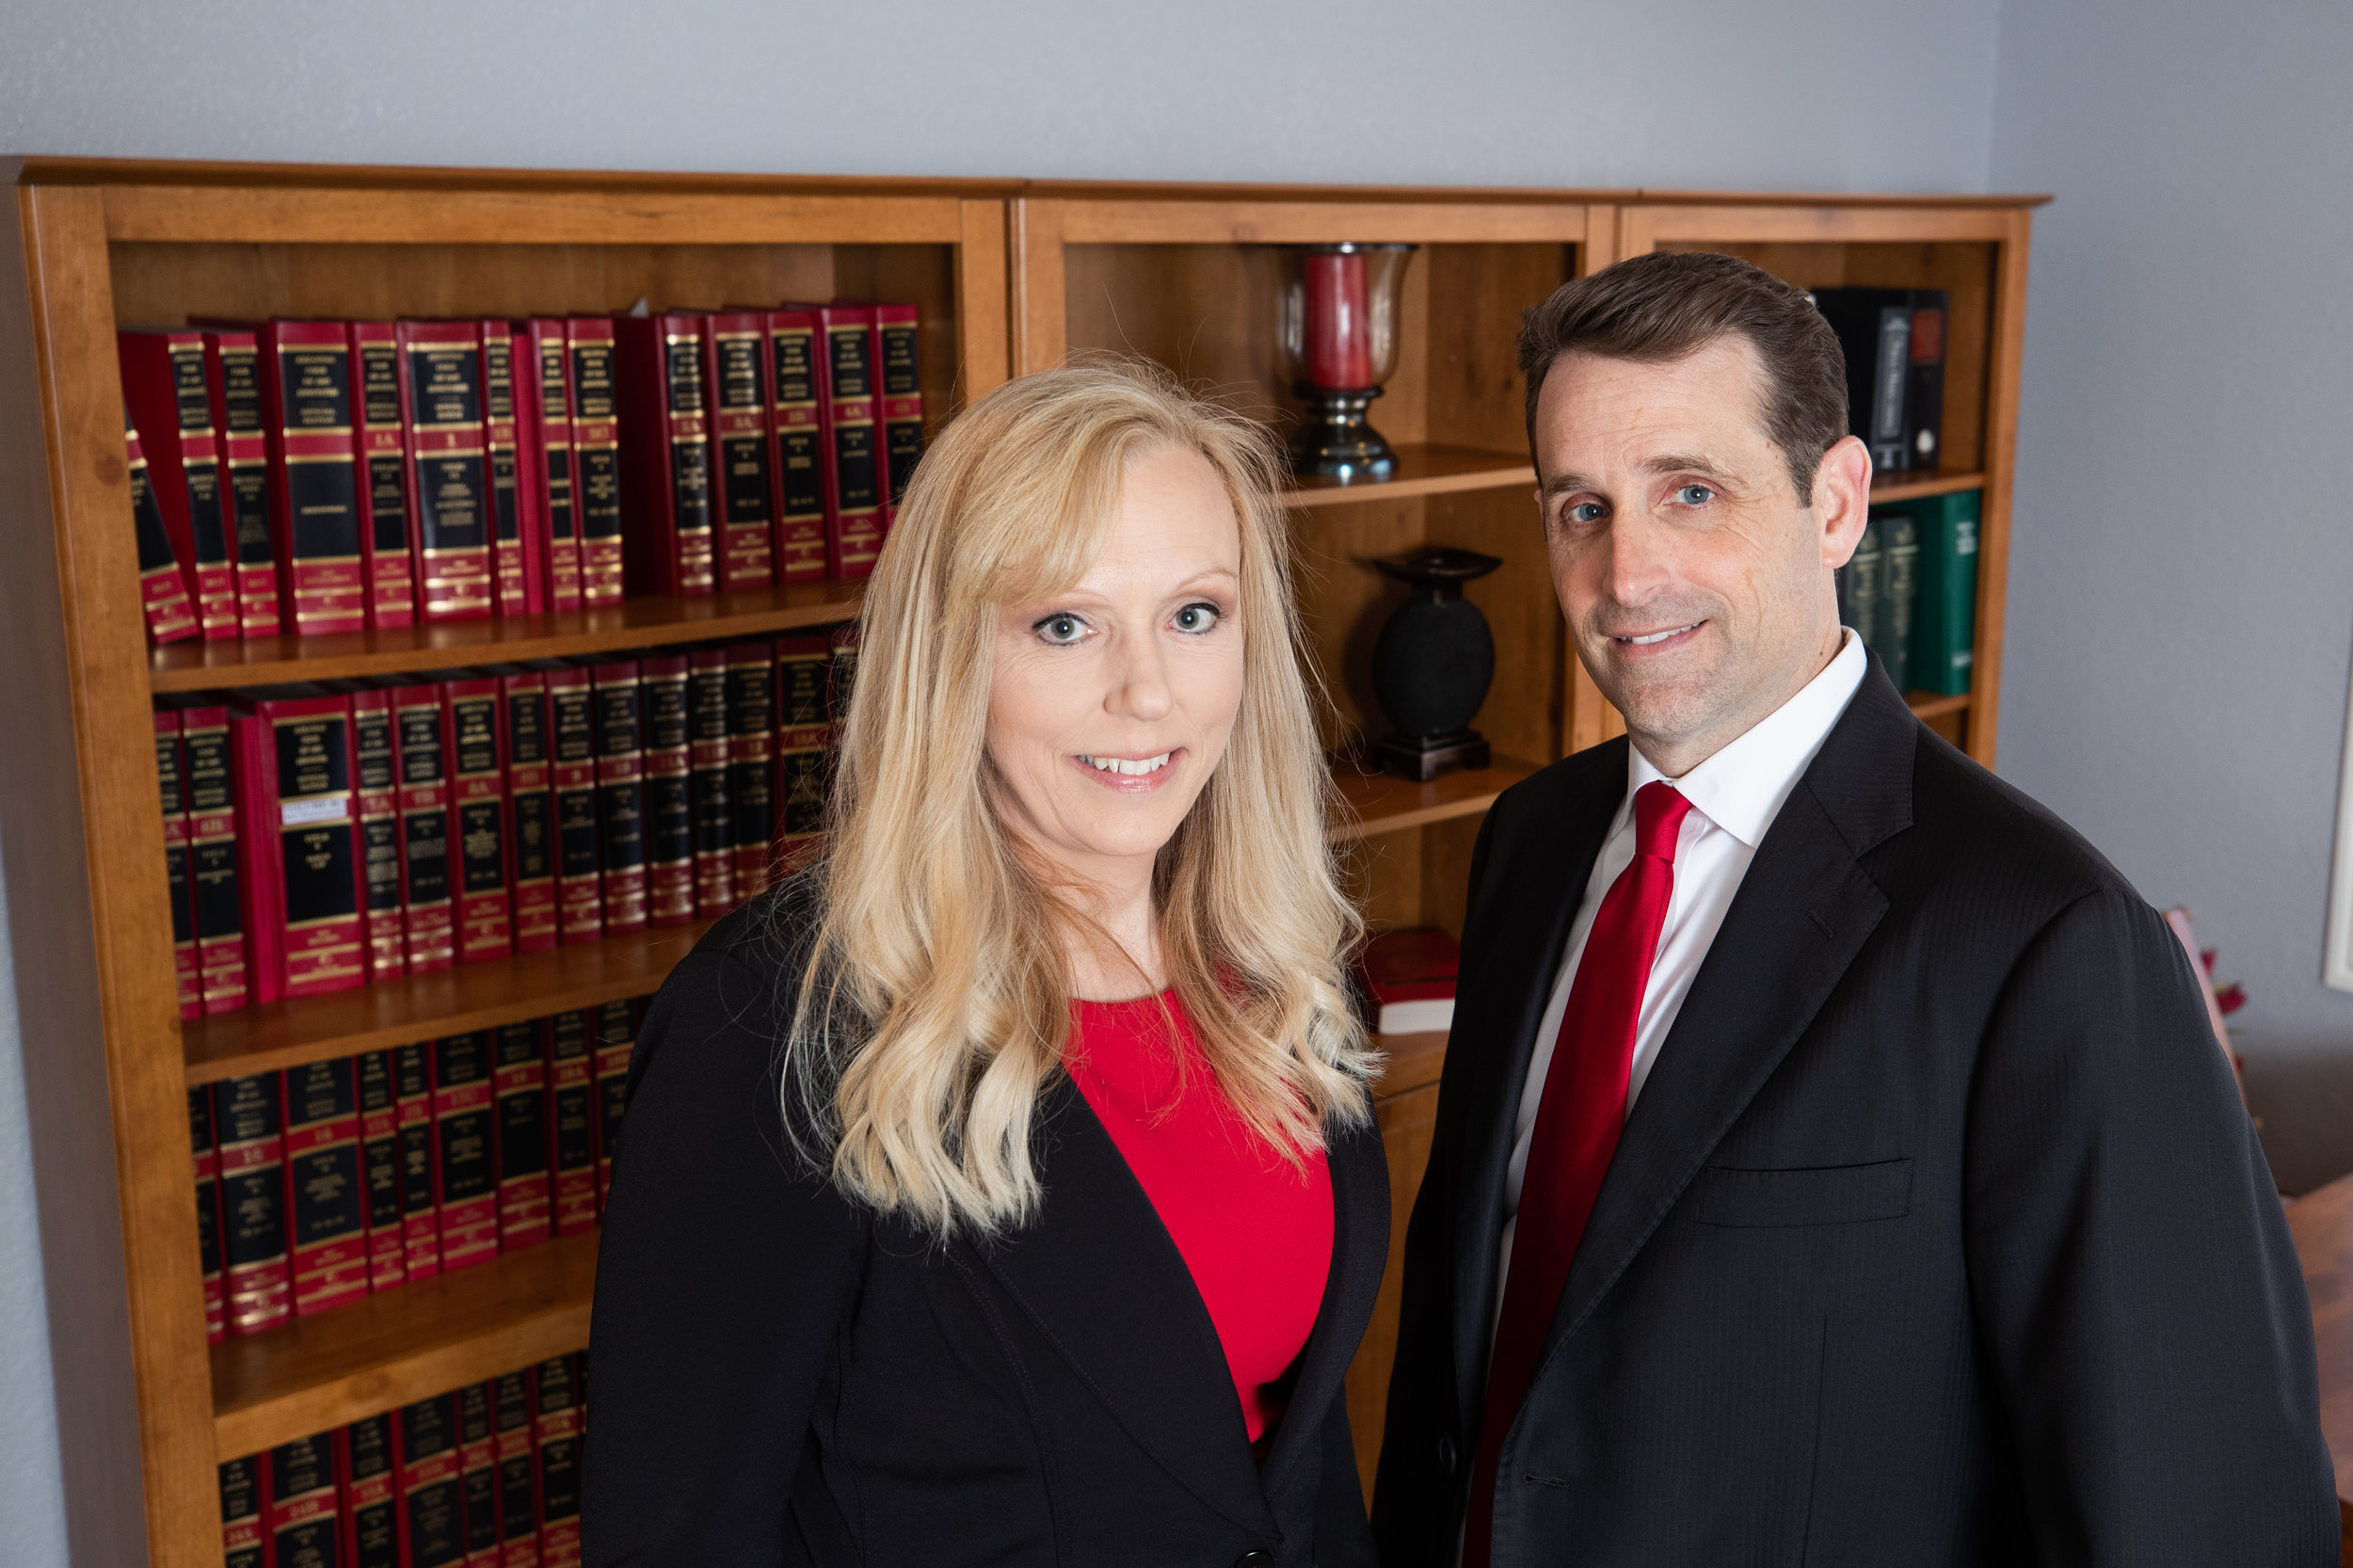 McManus Law Firm - Springdale Arkansas - 2019-41.jpg